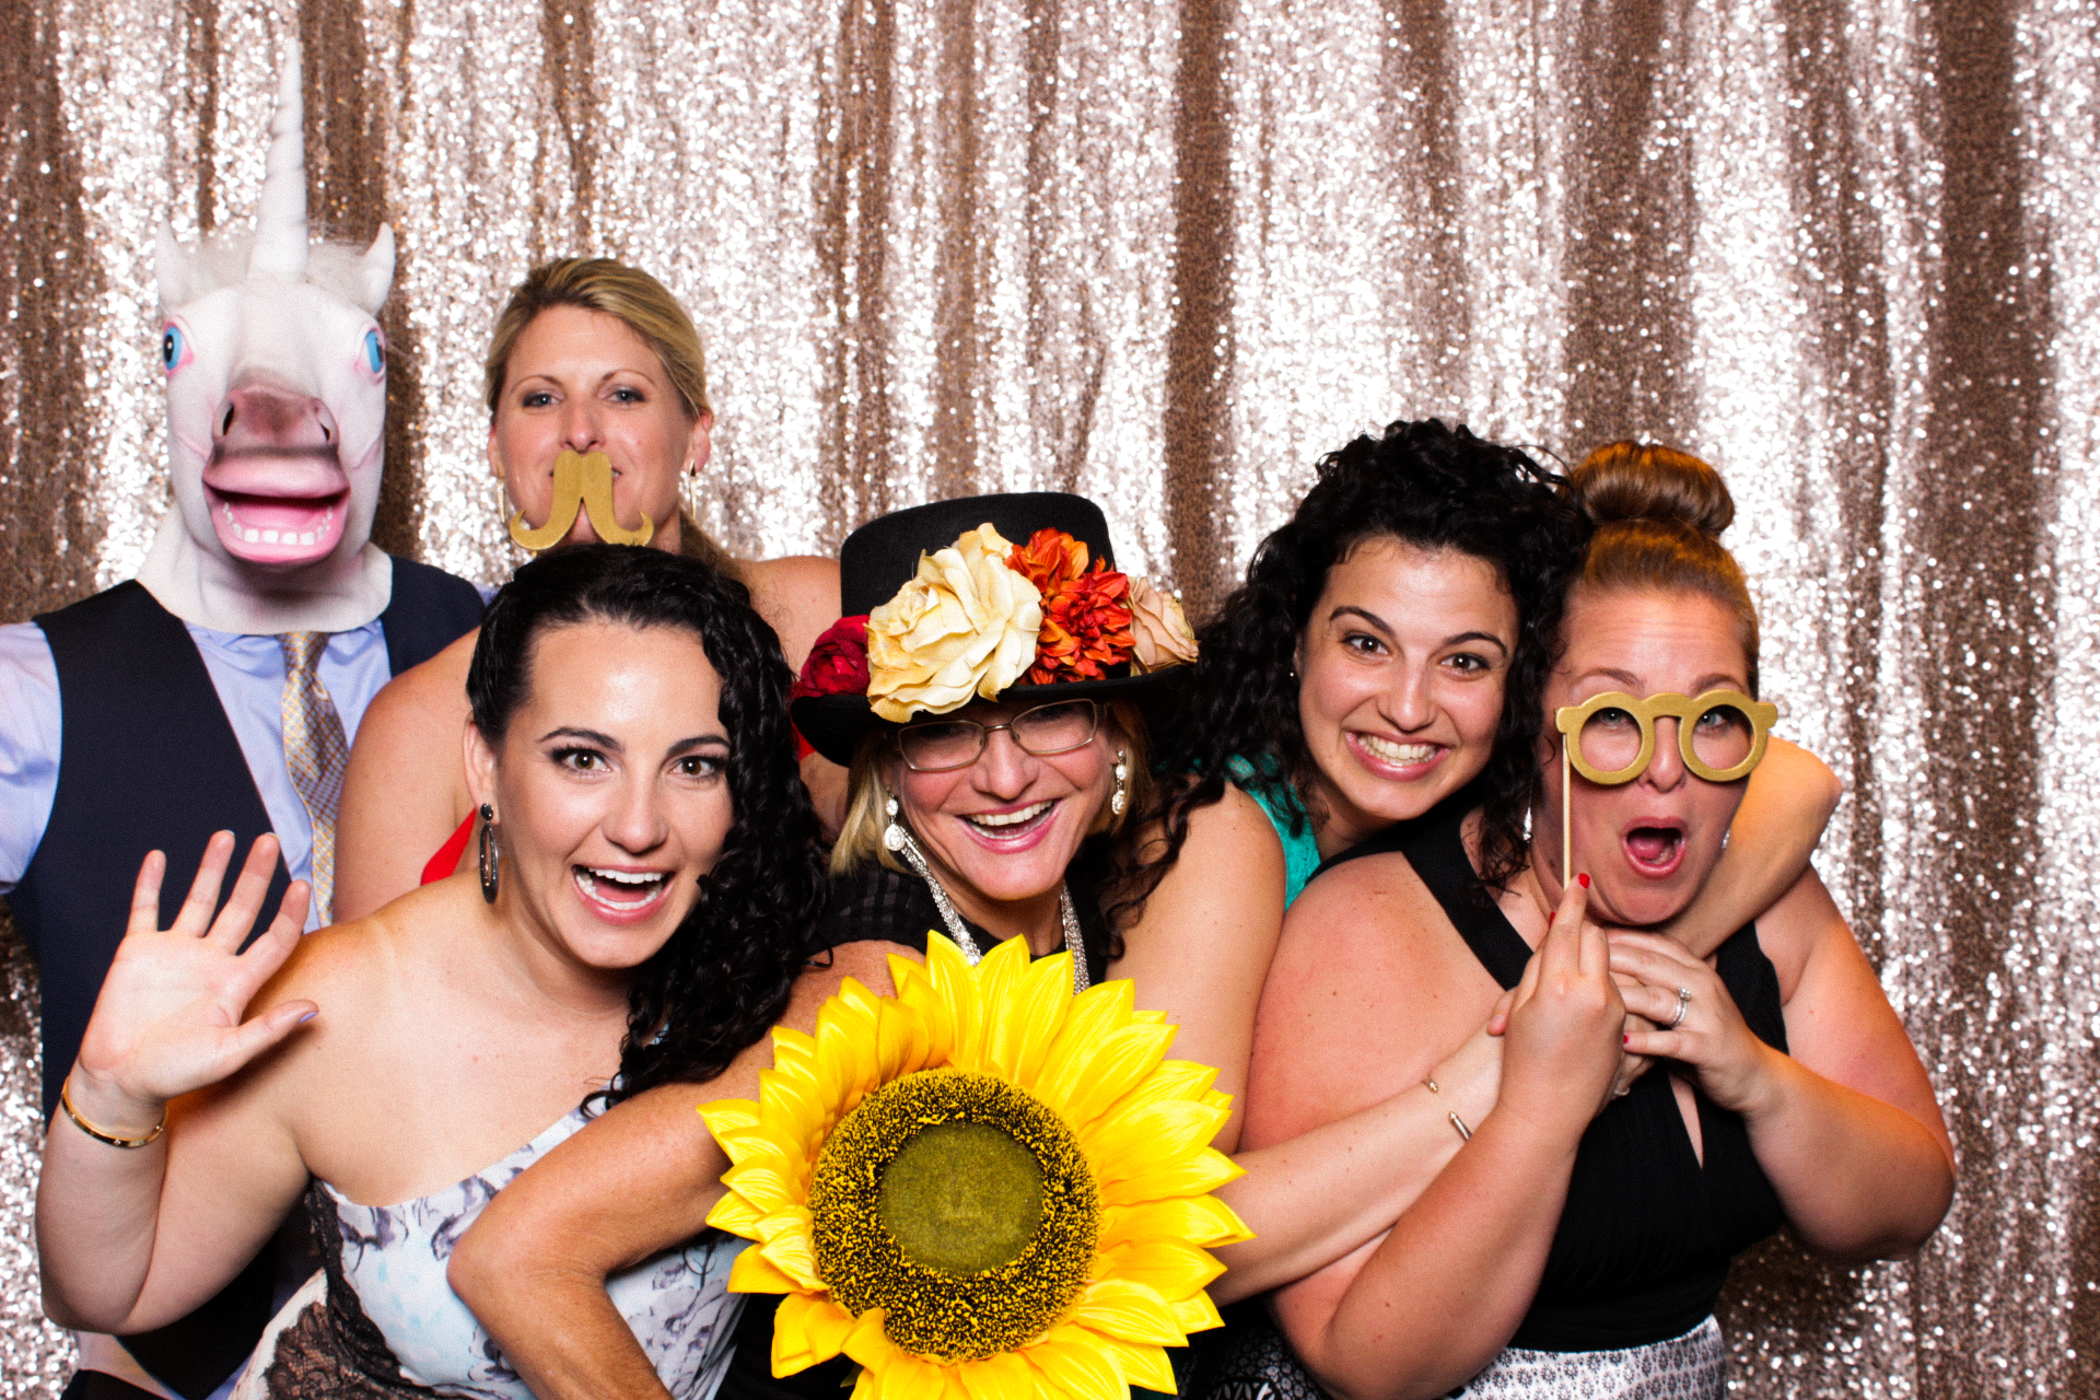 The_Reverie_Booth-Boca_Raton_Photobooth-Wedding_Photobooth_Florida-Florida_Photobooth_Rental-Wedding_Photobooth-059.jpg